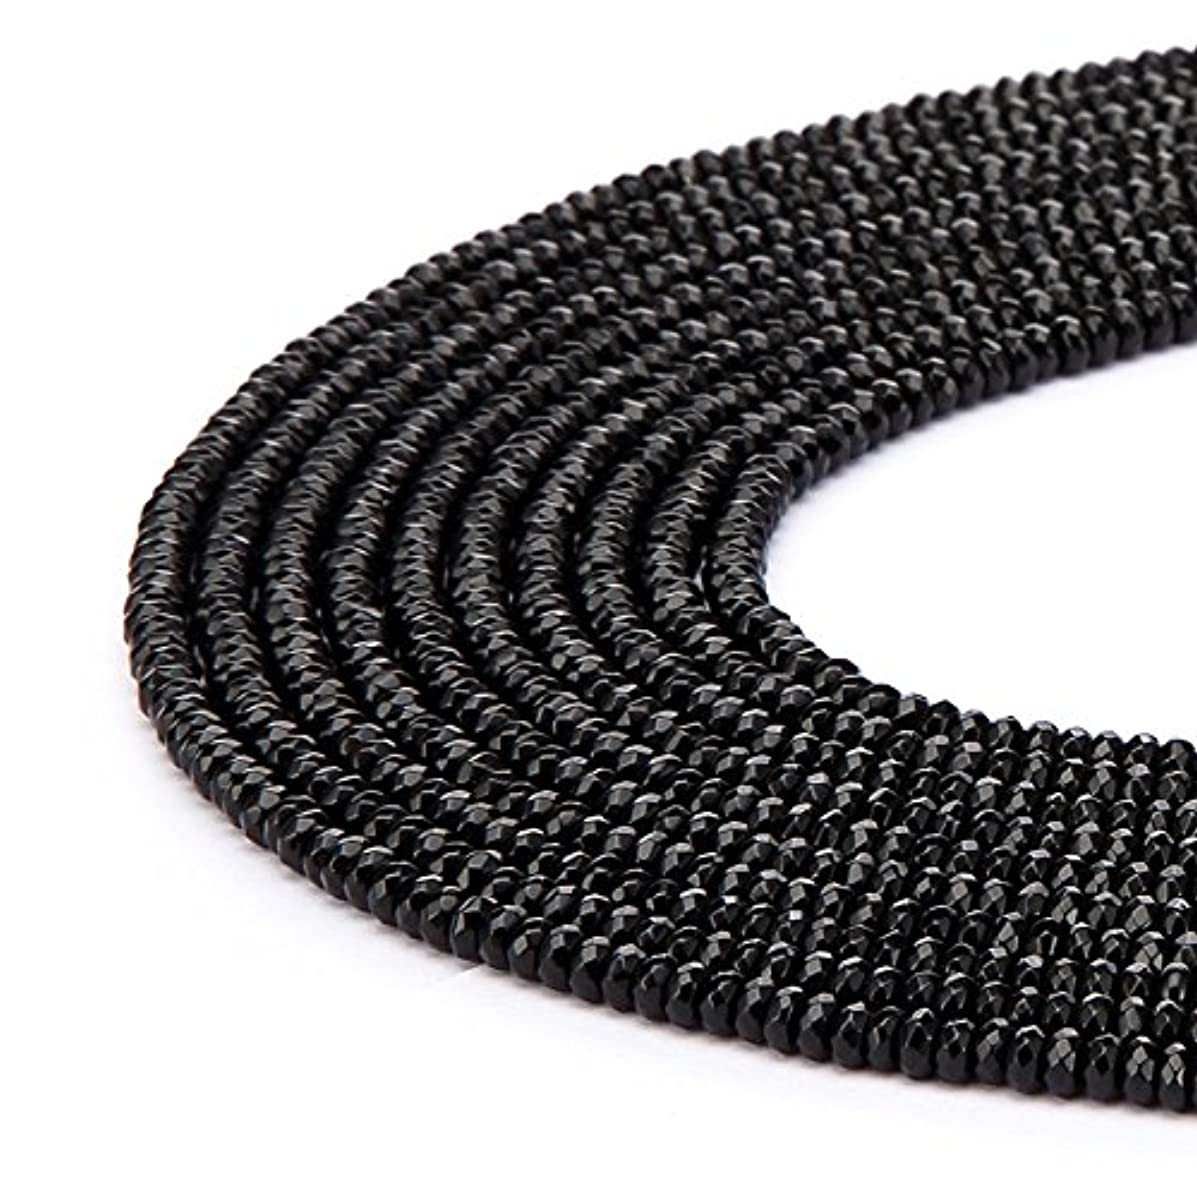 BRCbeads Black Onyx Gemstone Faceted Rondelle Loose Beads 5x8mm Approxi 15.5 inch 80pcs 1 Strand per Bag for Jewelry Making